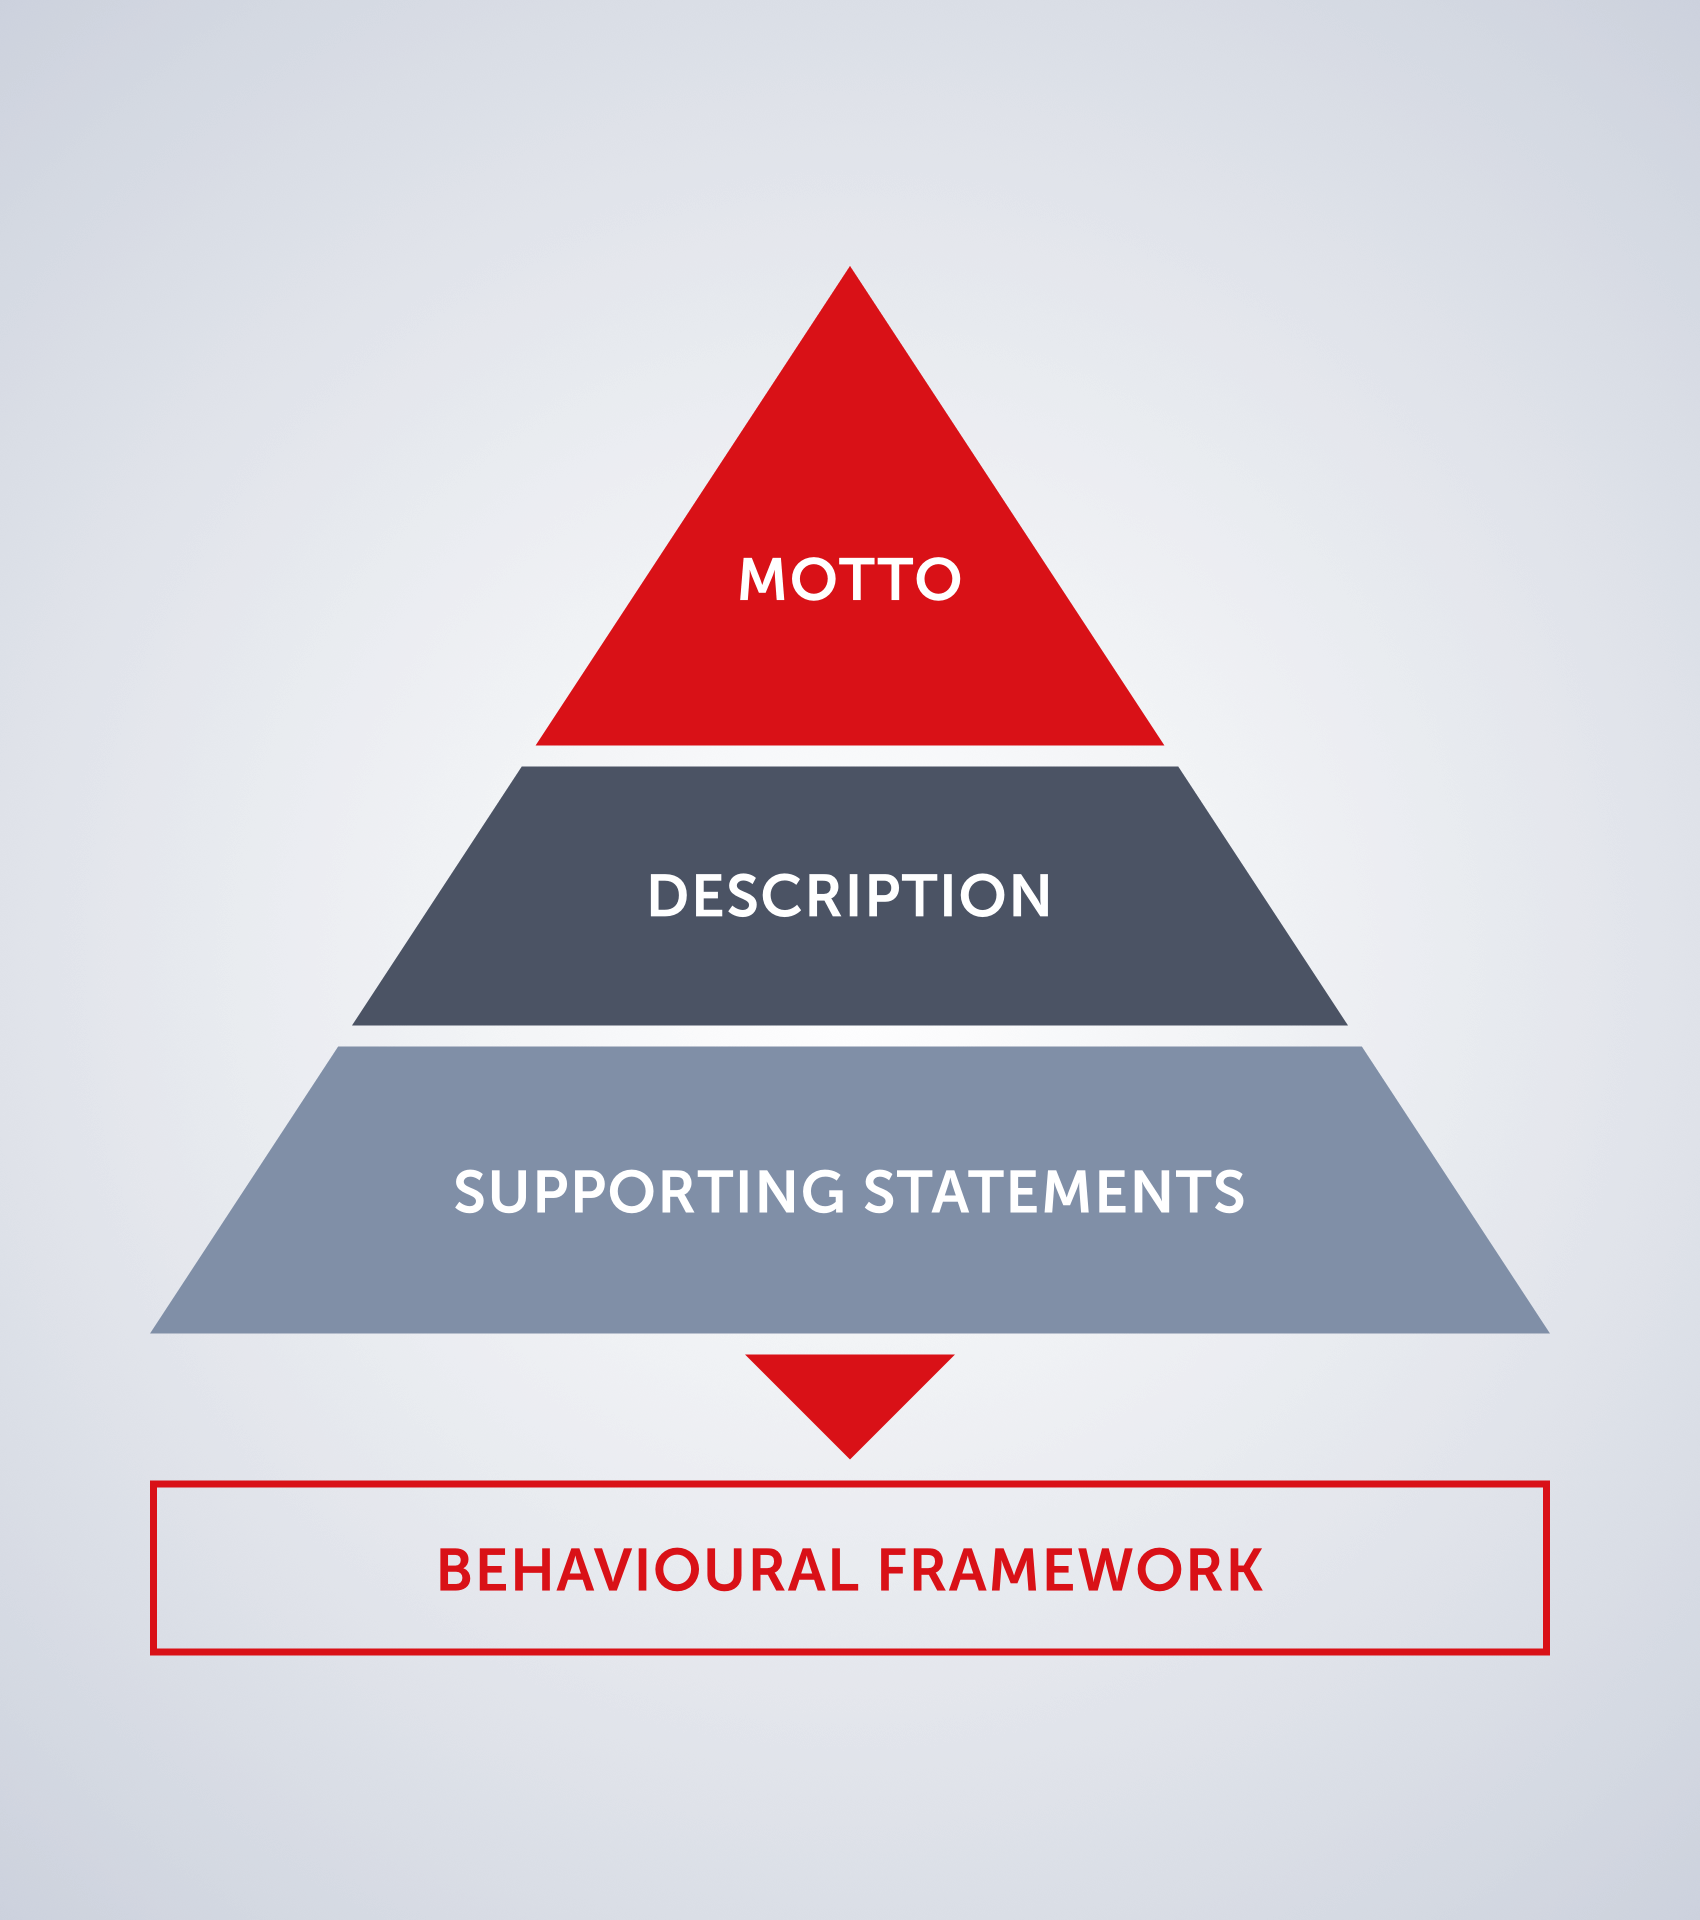 Aptitude behavioural framework